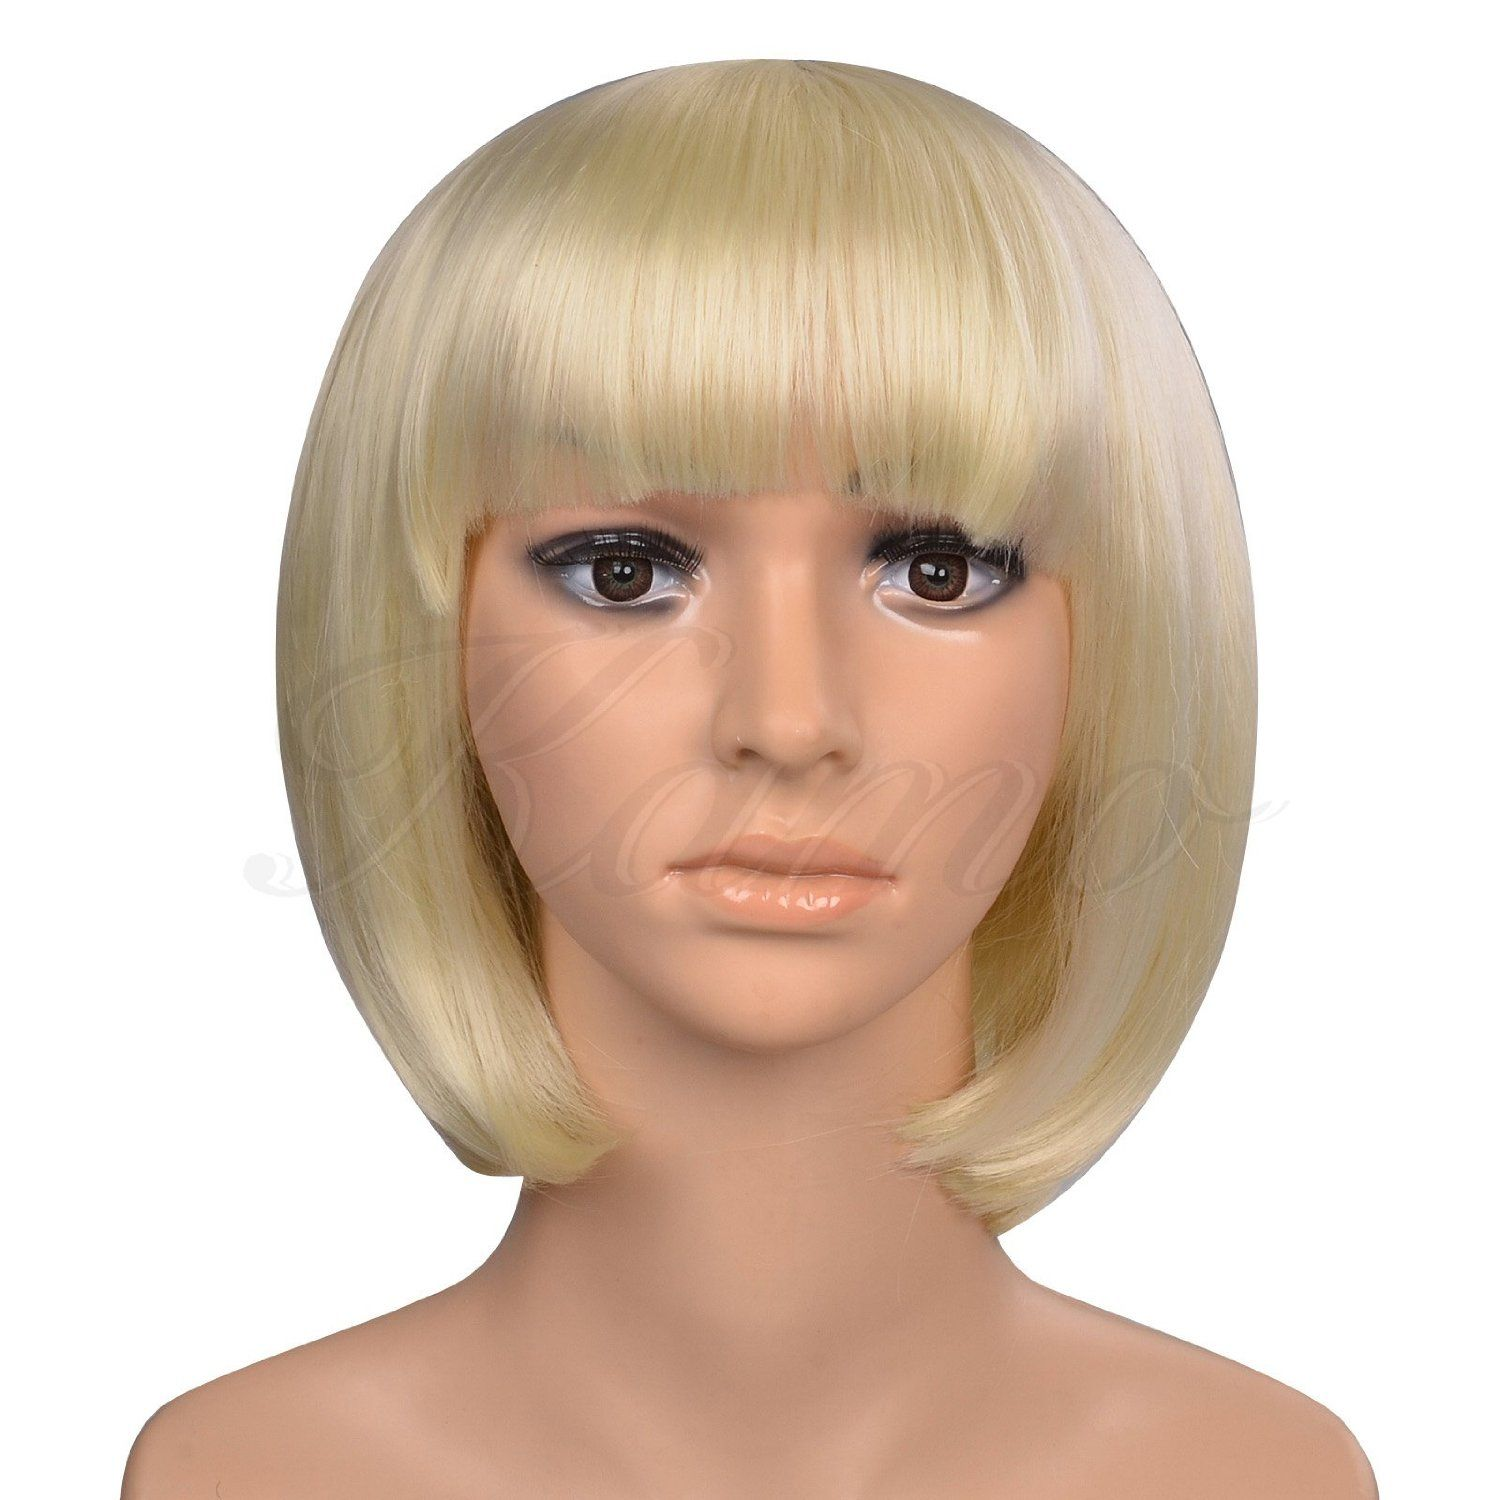 Amazon.com : Kamo Short Straight Bob Sexy Stylish Heat Resistant Sythetic Hair Wig Creamy White Blonde : Hair Extensions : Beauty